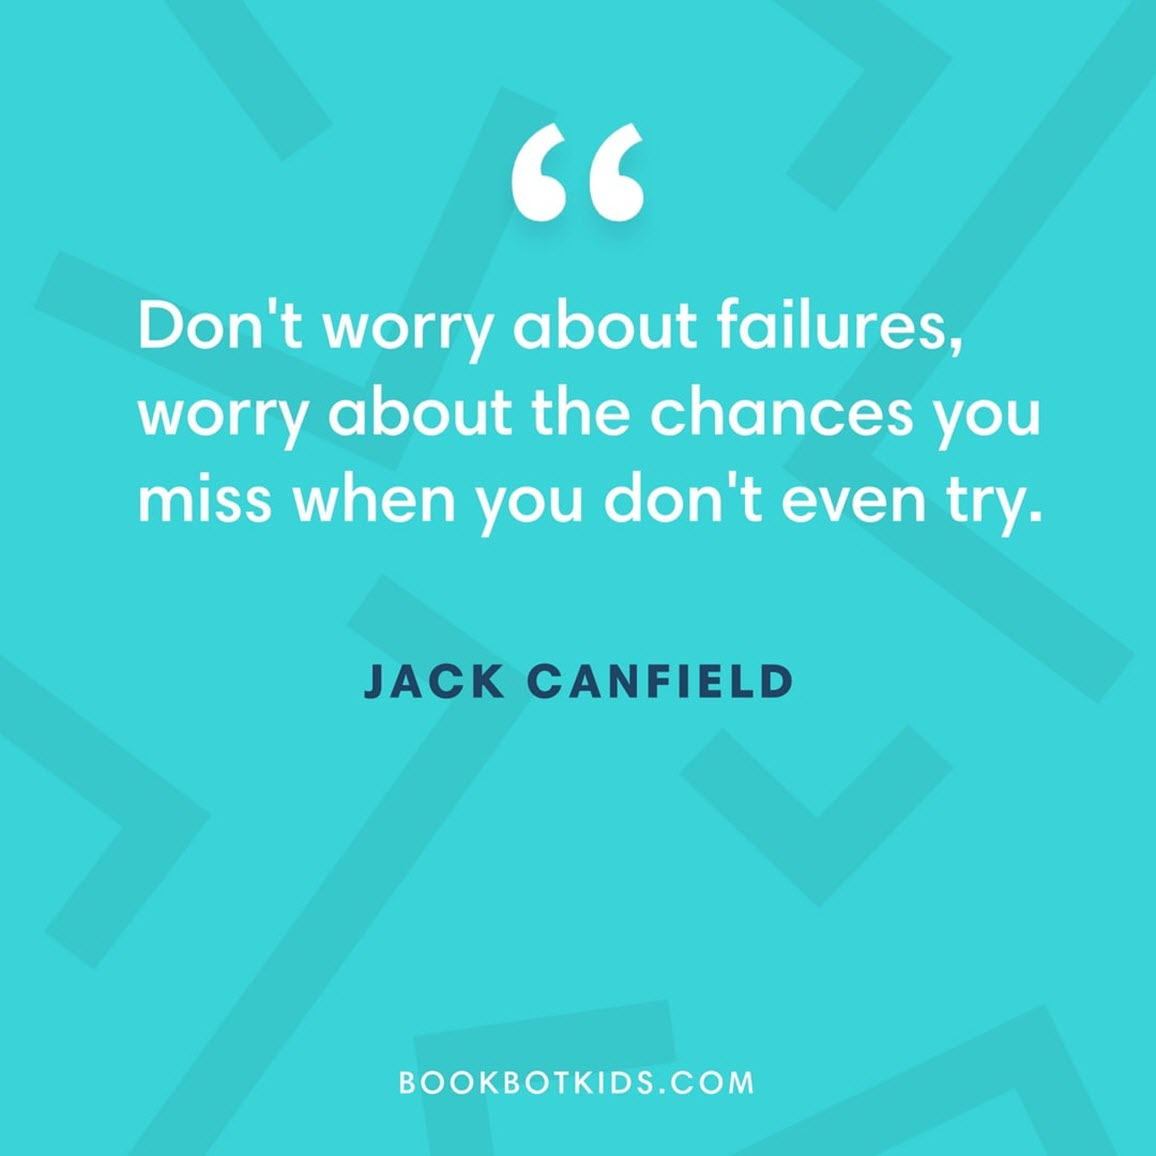 Don't worry about failures, worry about the chances you miss when you don't even try. – Jack Canfield